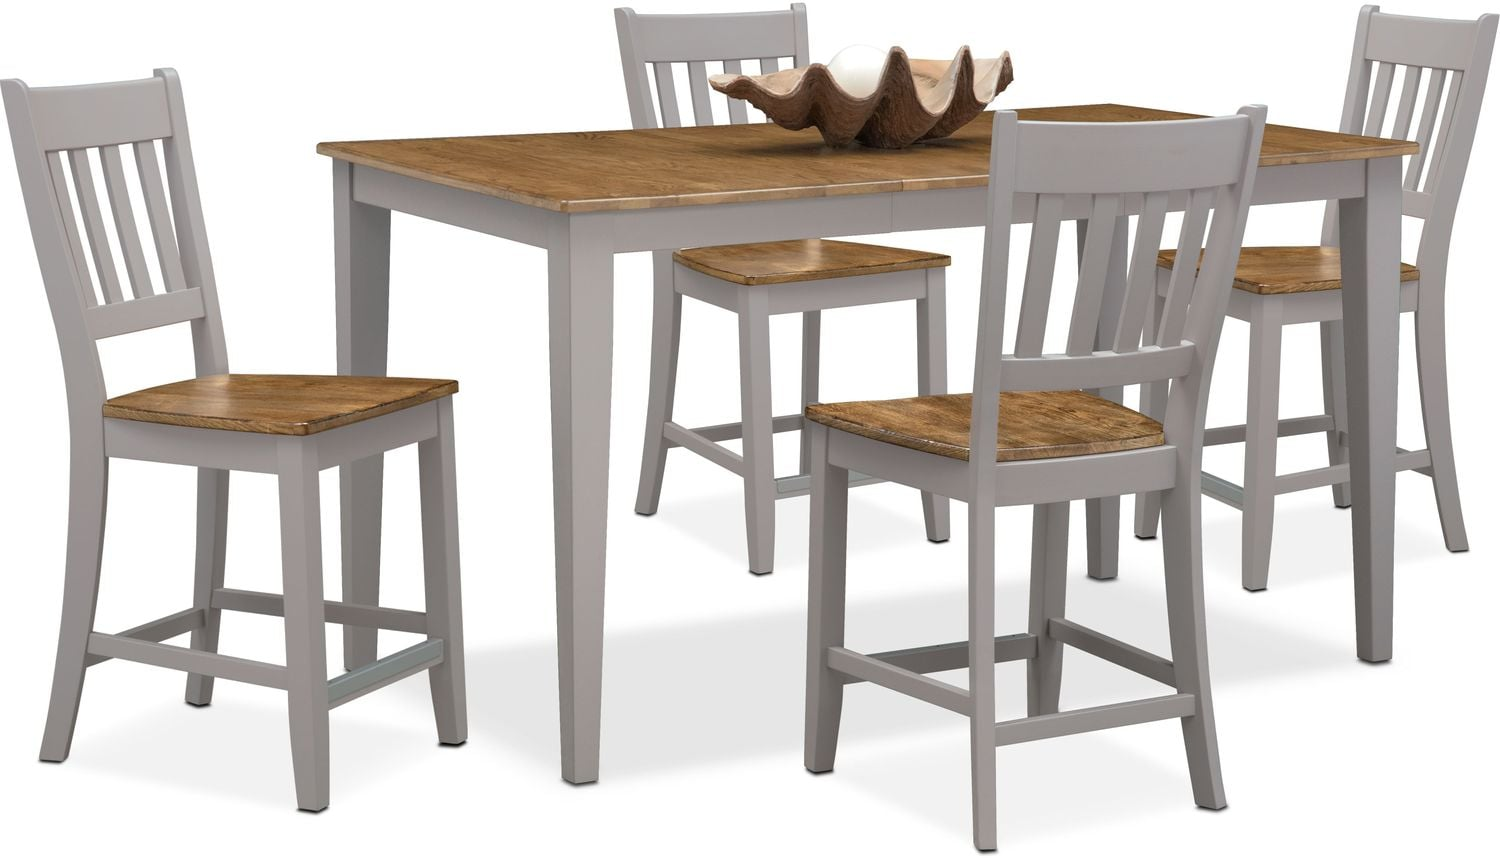 Nantucket Counter-Height Table and 4 Slat-Back Chairs - Maple